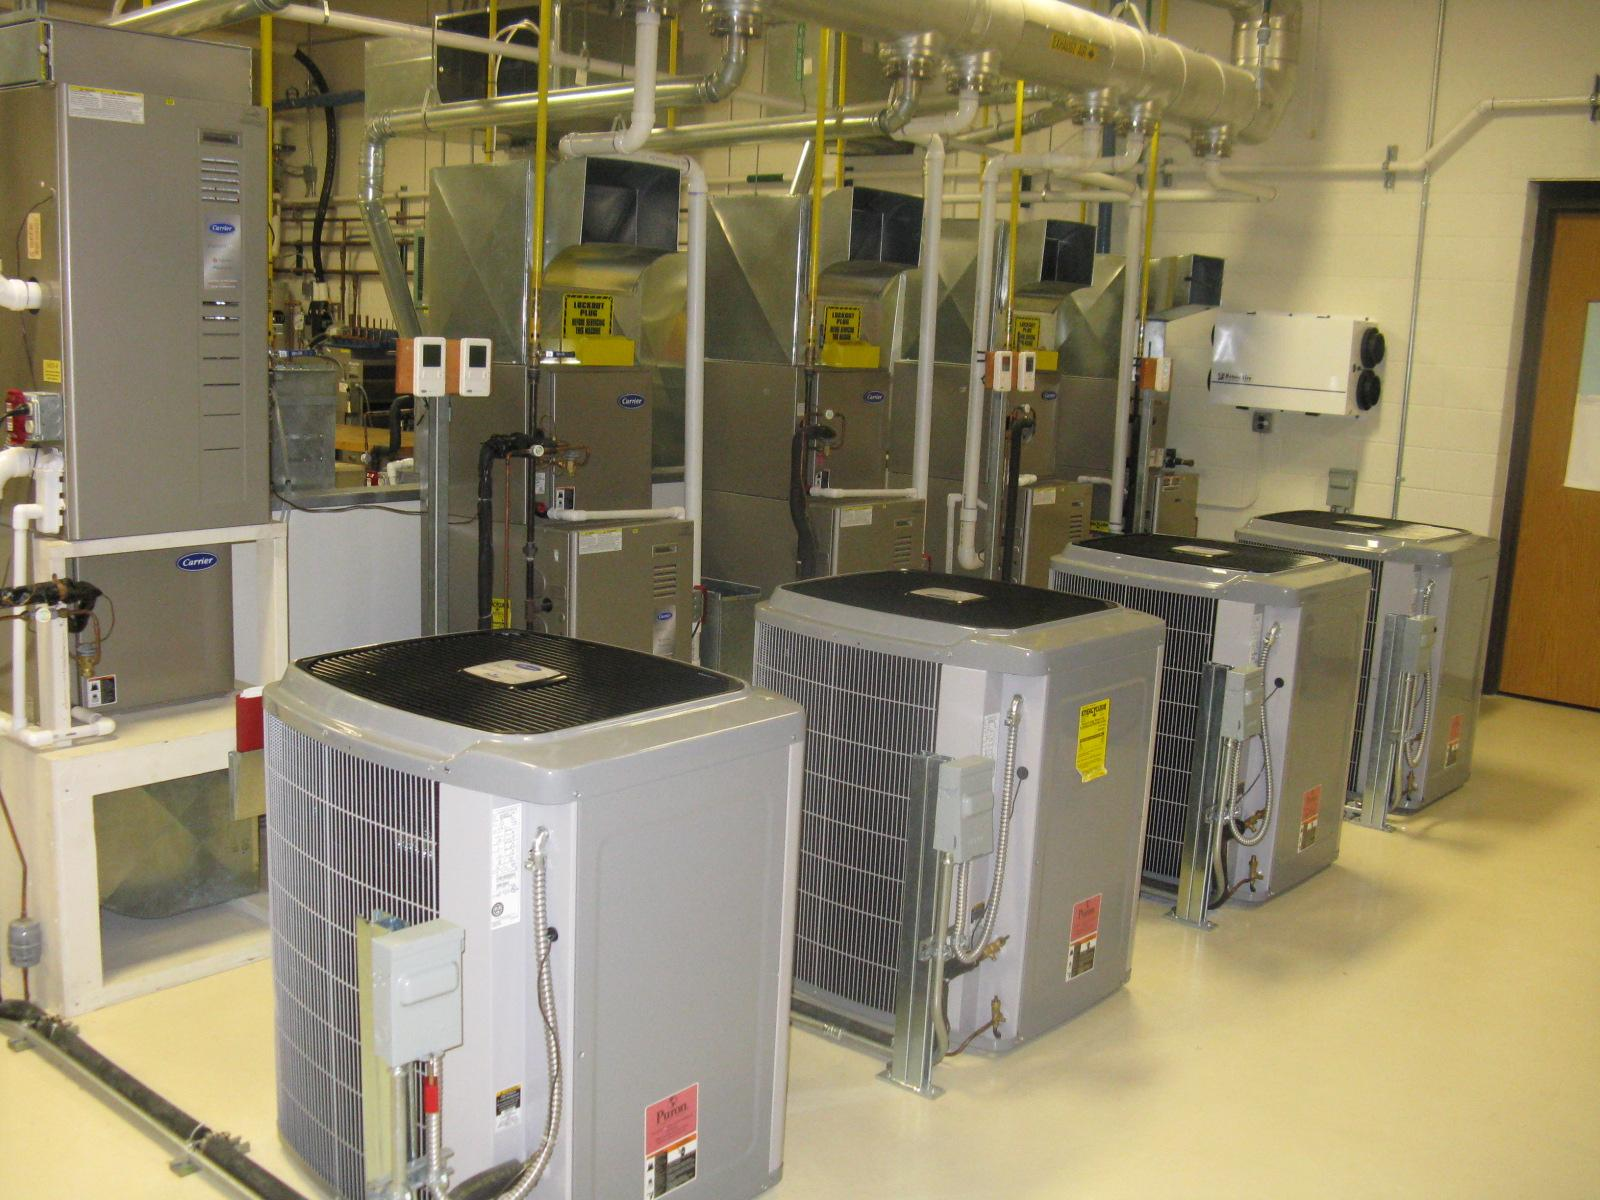 High efficiency A/C units in HVAC lab